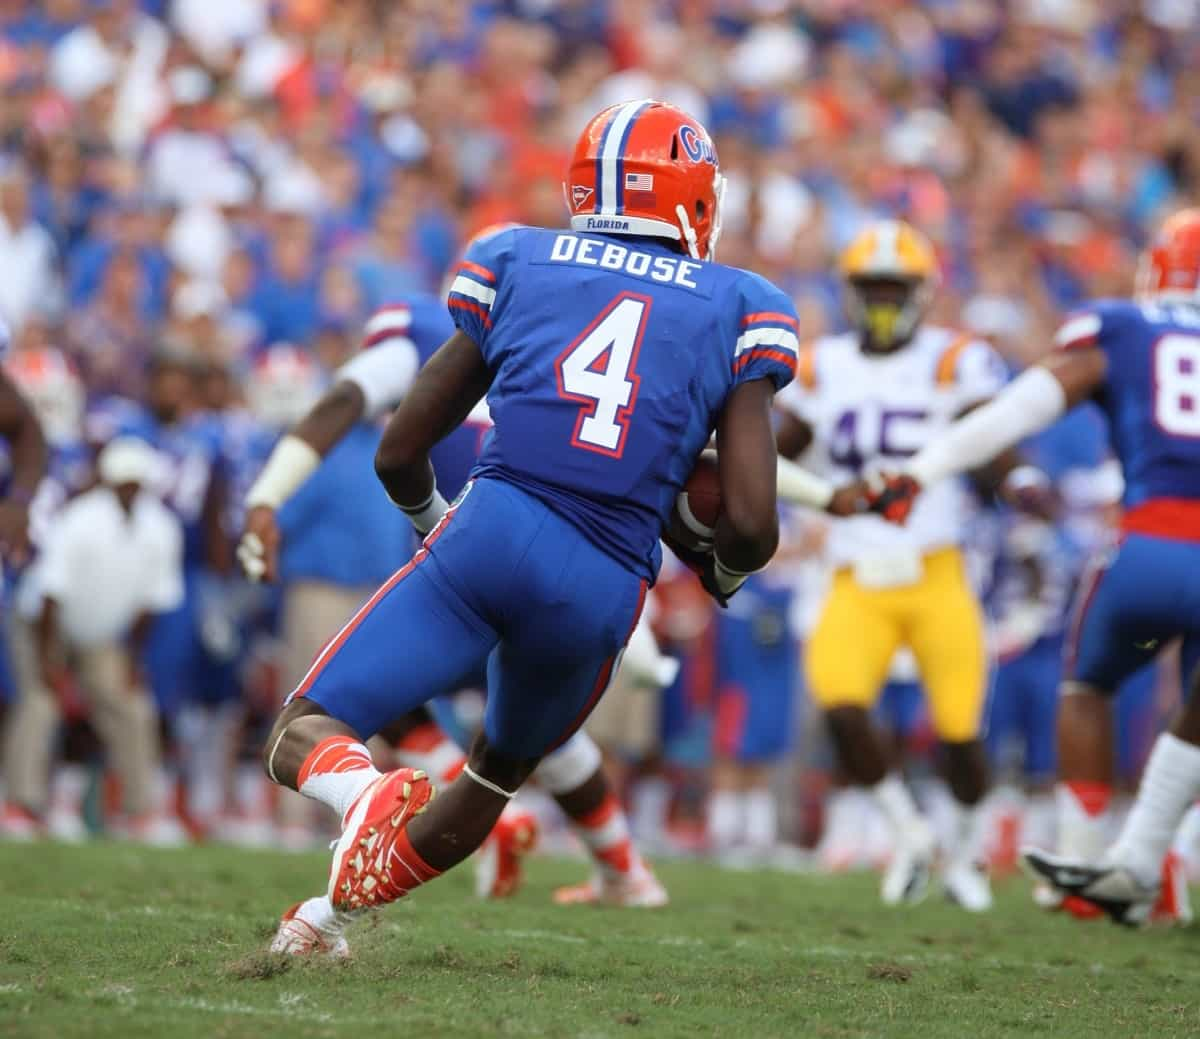 Andre Debose returns for his sixth season with the Florida Gators. / Photo by David Bowie